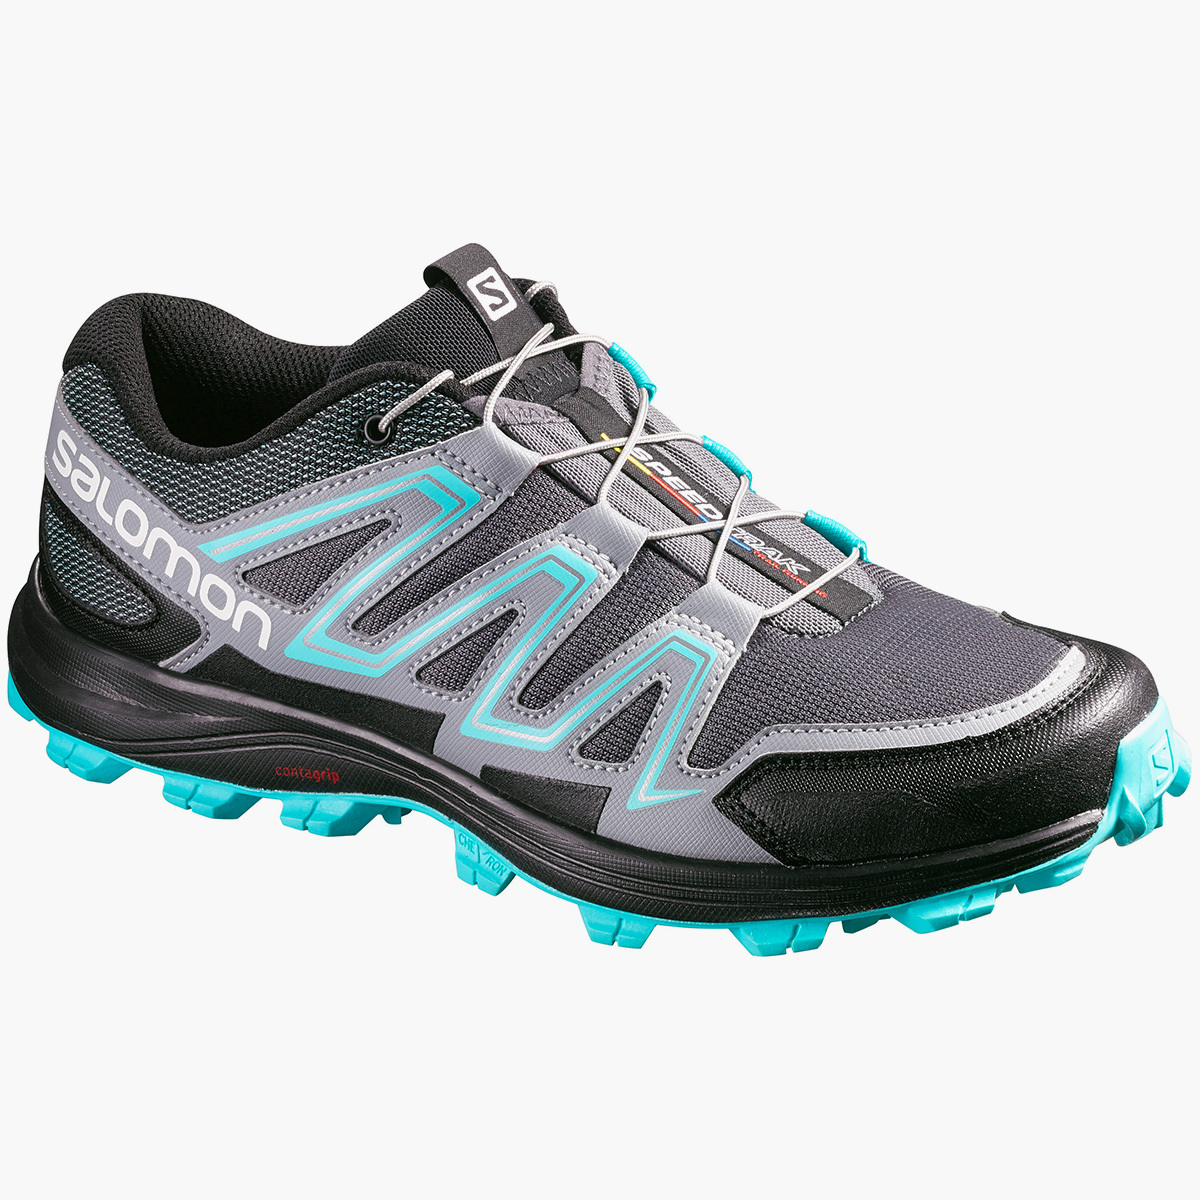 Qsport Salomon Chaussure Trail Speedtrack